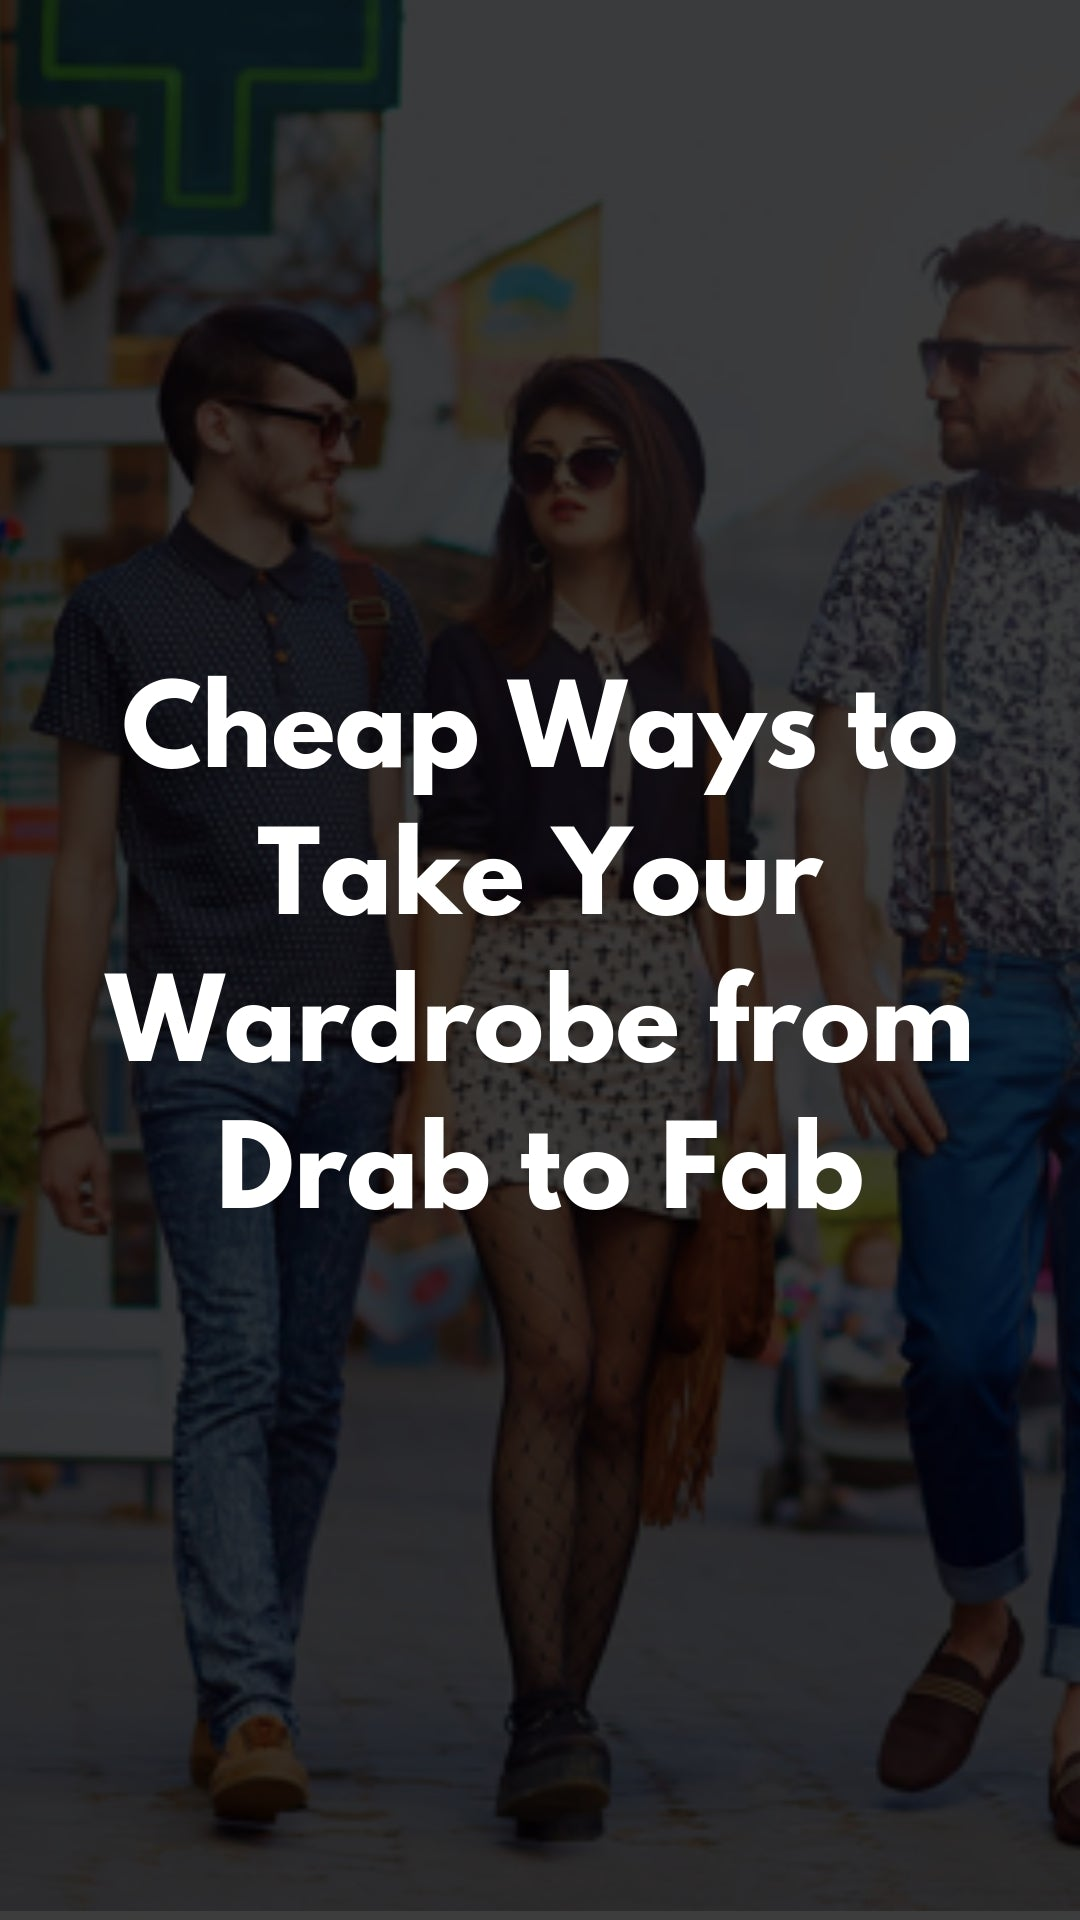 Cheap Ways to Take Your Wardrobe from Drab to Fab